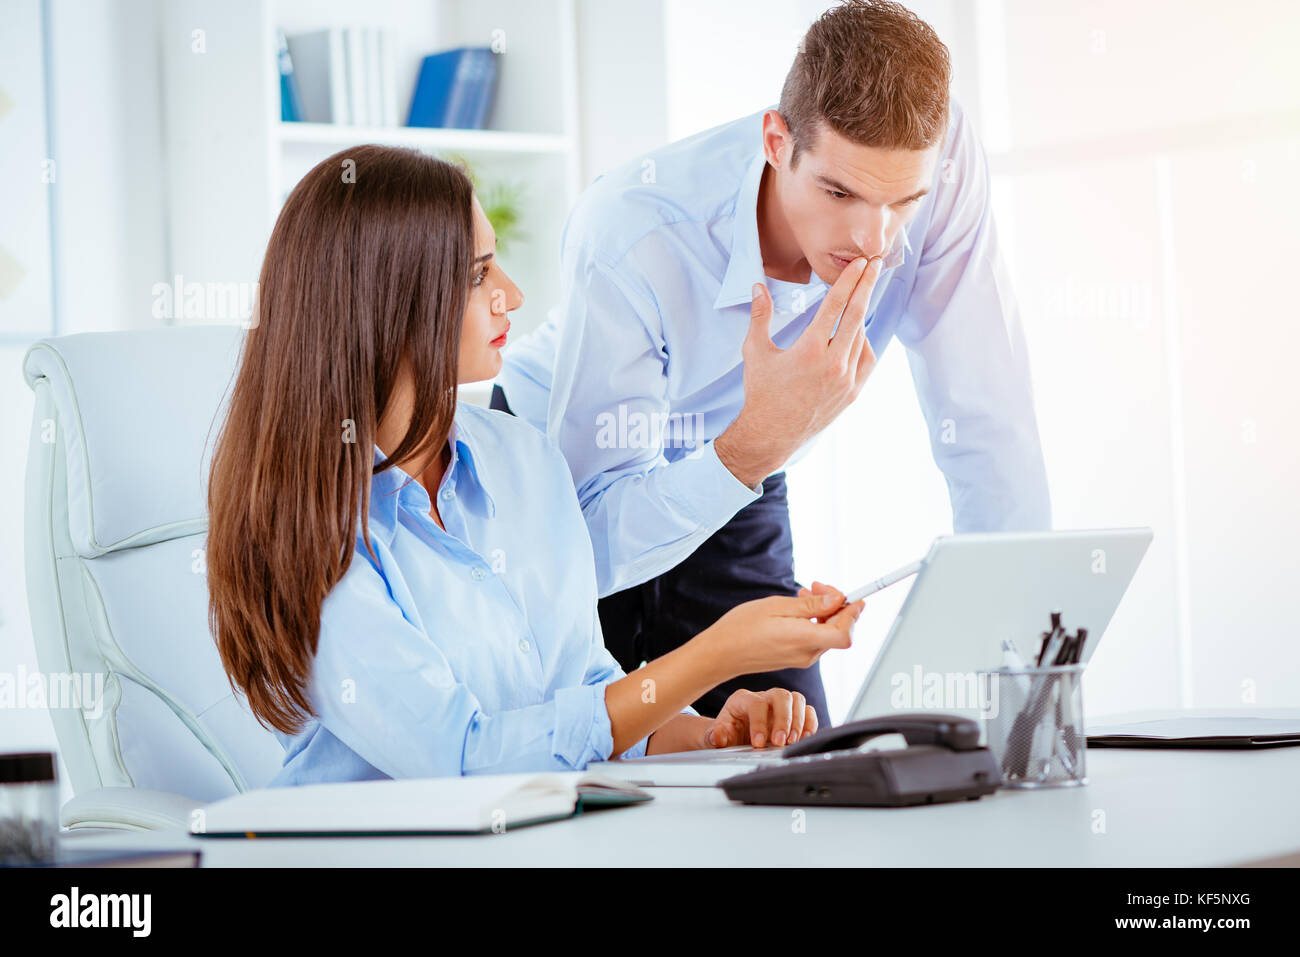 Two young business people talking in the office. Woman sitting at an office desk, behind her standing a young man - Stock Image